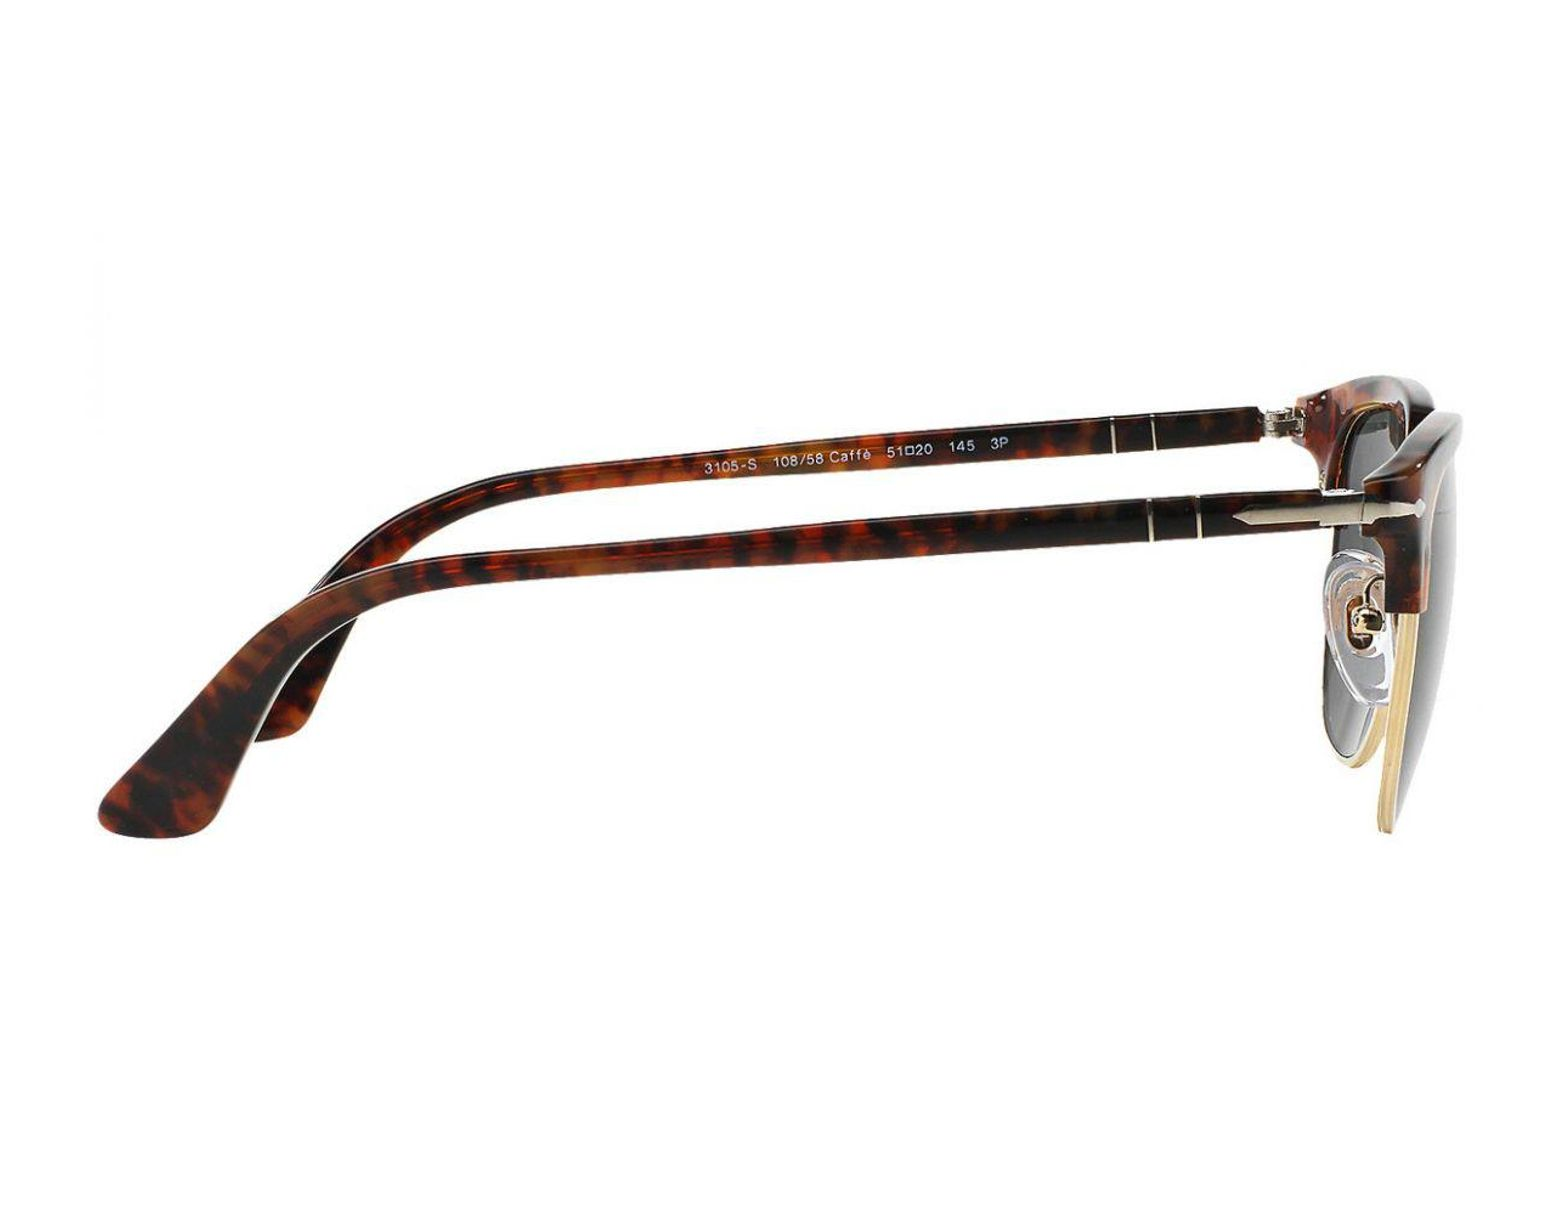 11e8e994c2e32 Lyst - Persol Icons Po3105s 108 58 Caffe With Crystal Green Lenses  Sunglasses in Green for Men